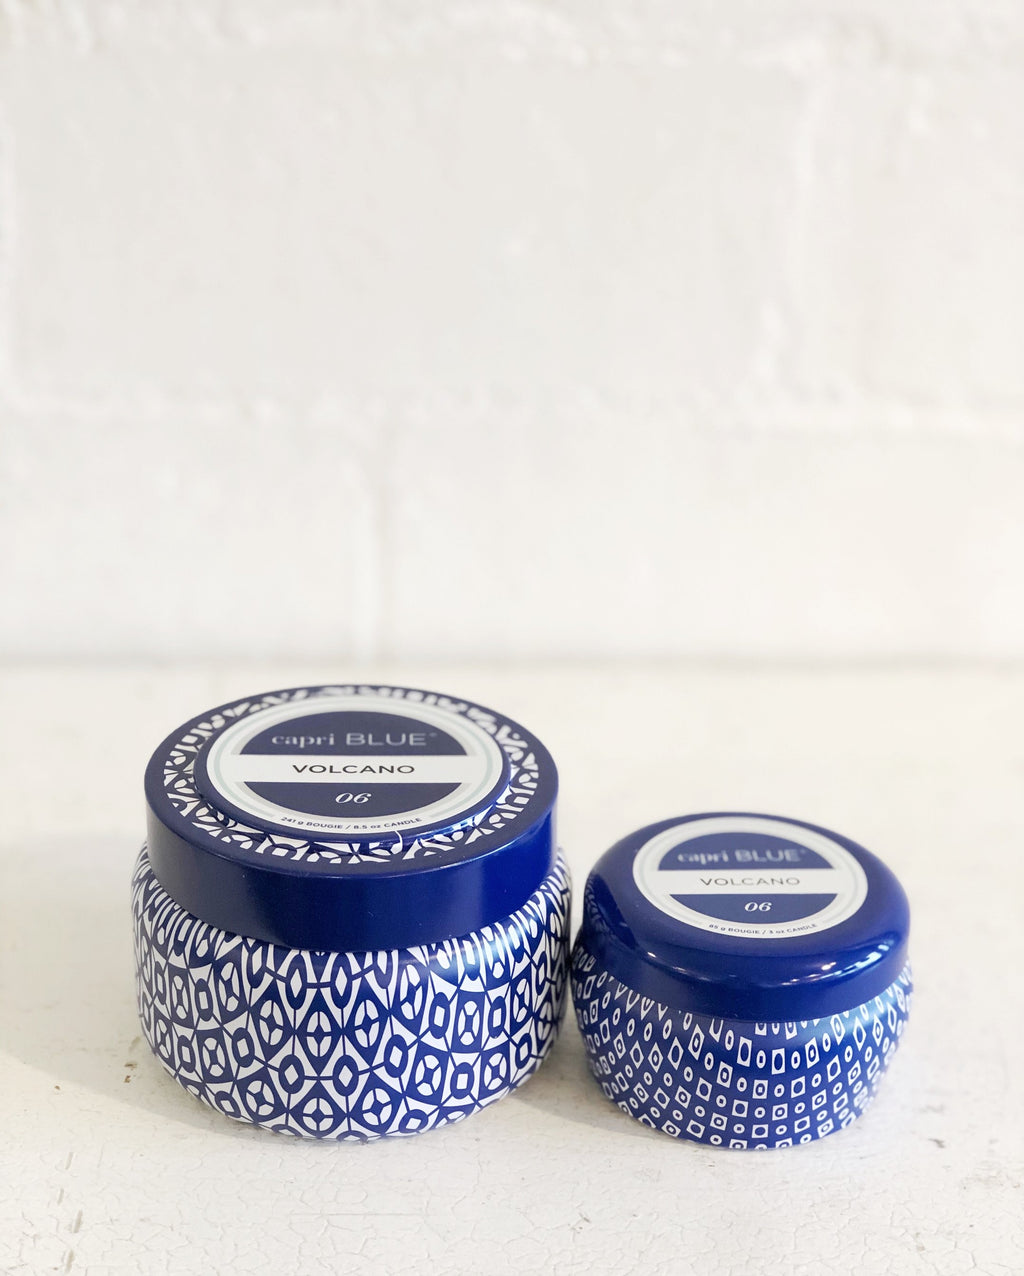 CapriBlue Volcano Candle -Blue tin